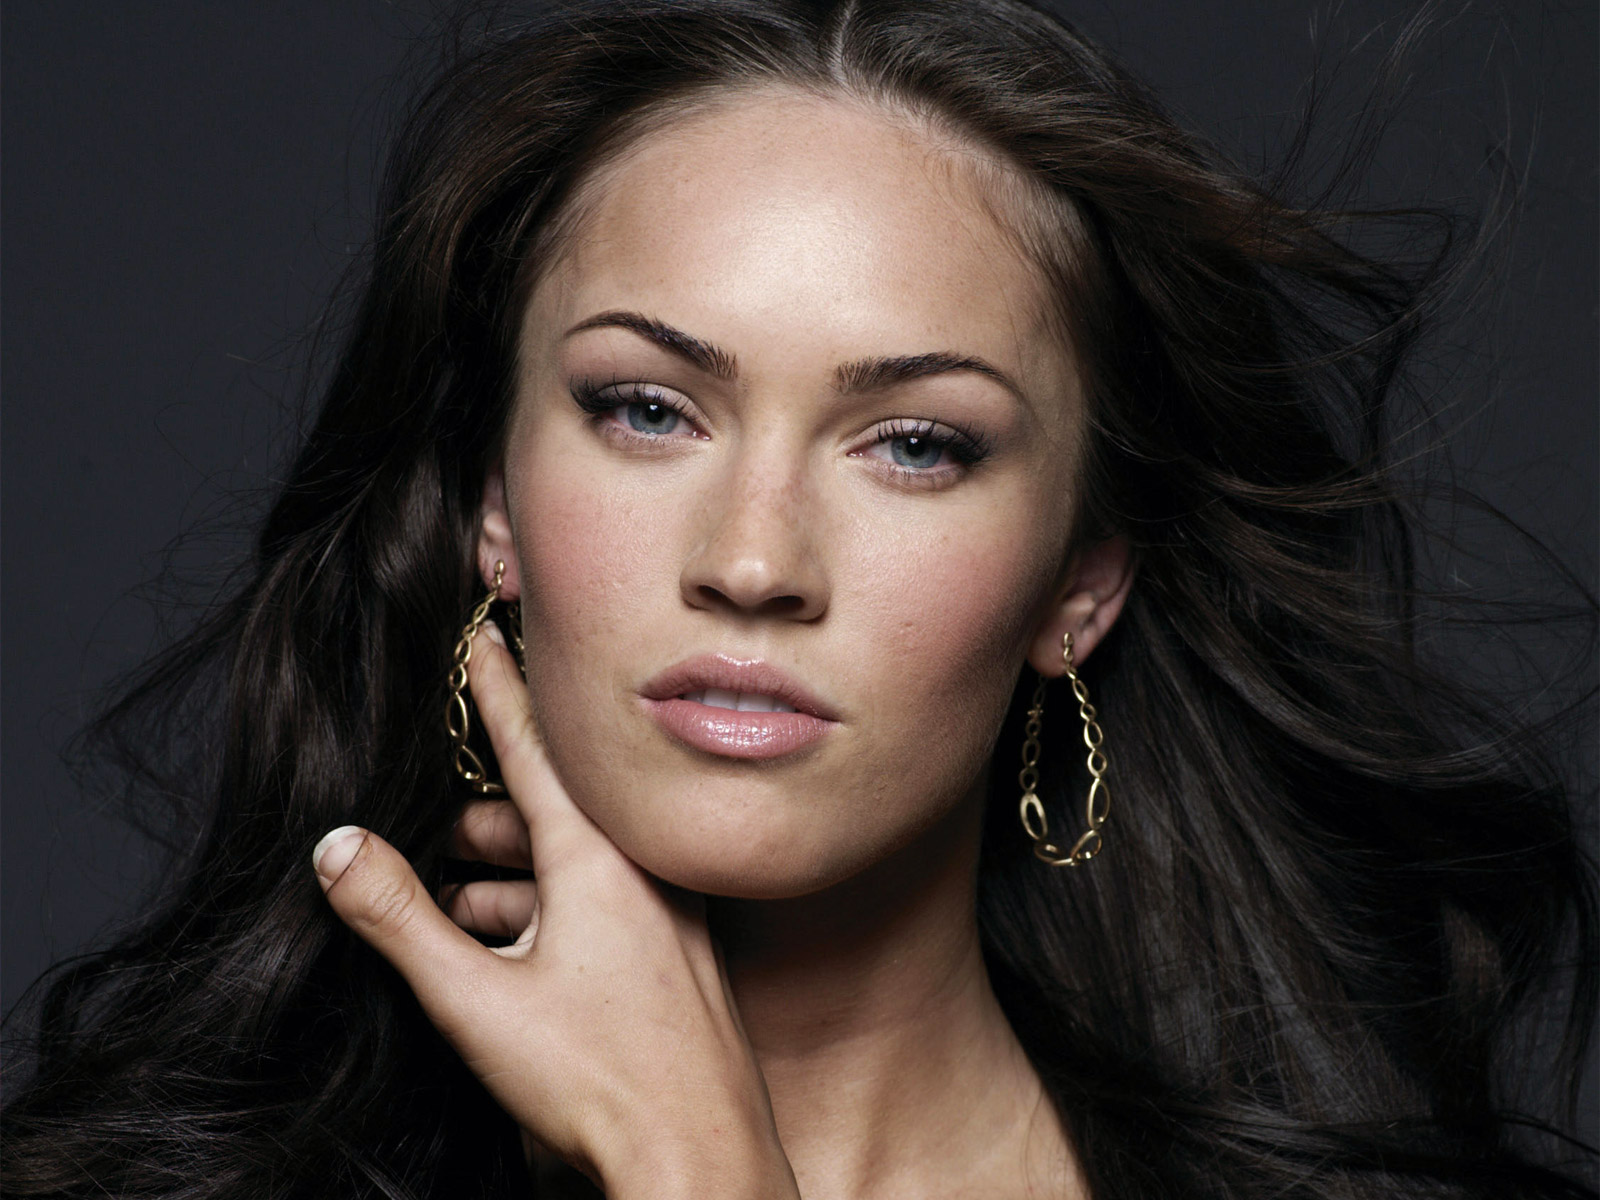 Megan Fox image... David Gallagher Young